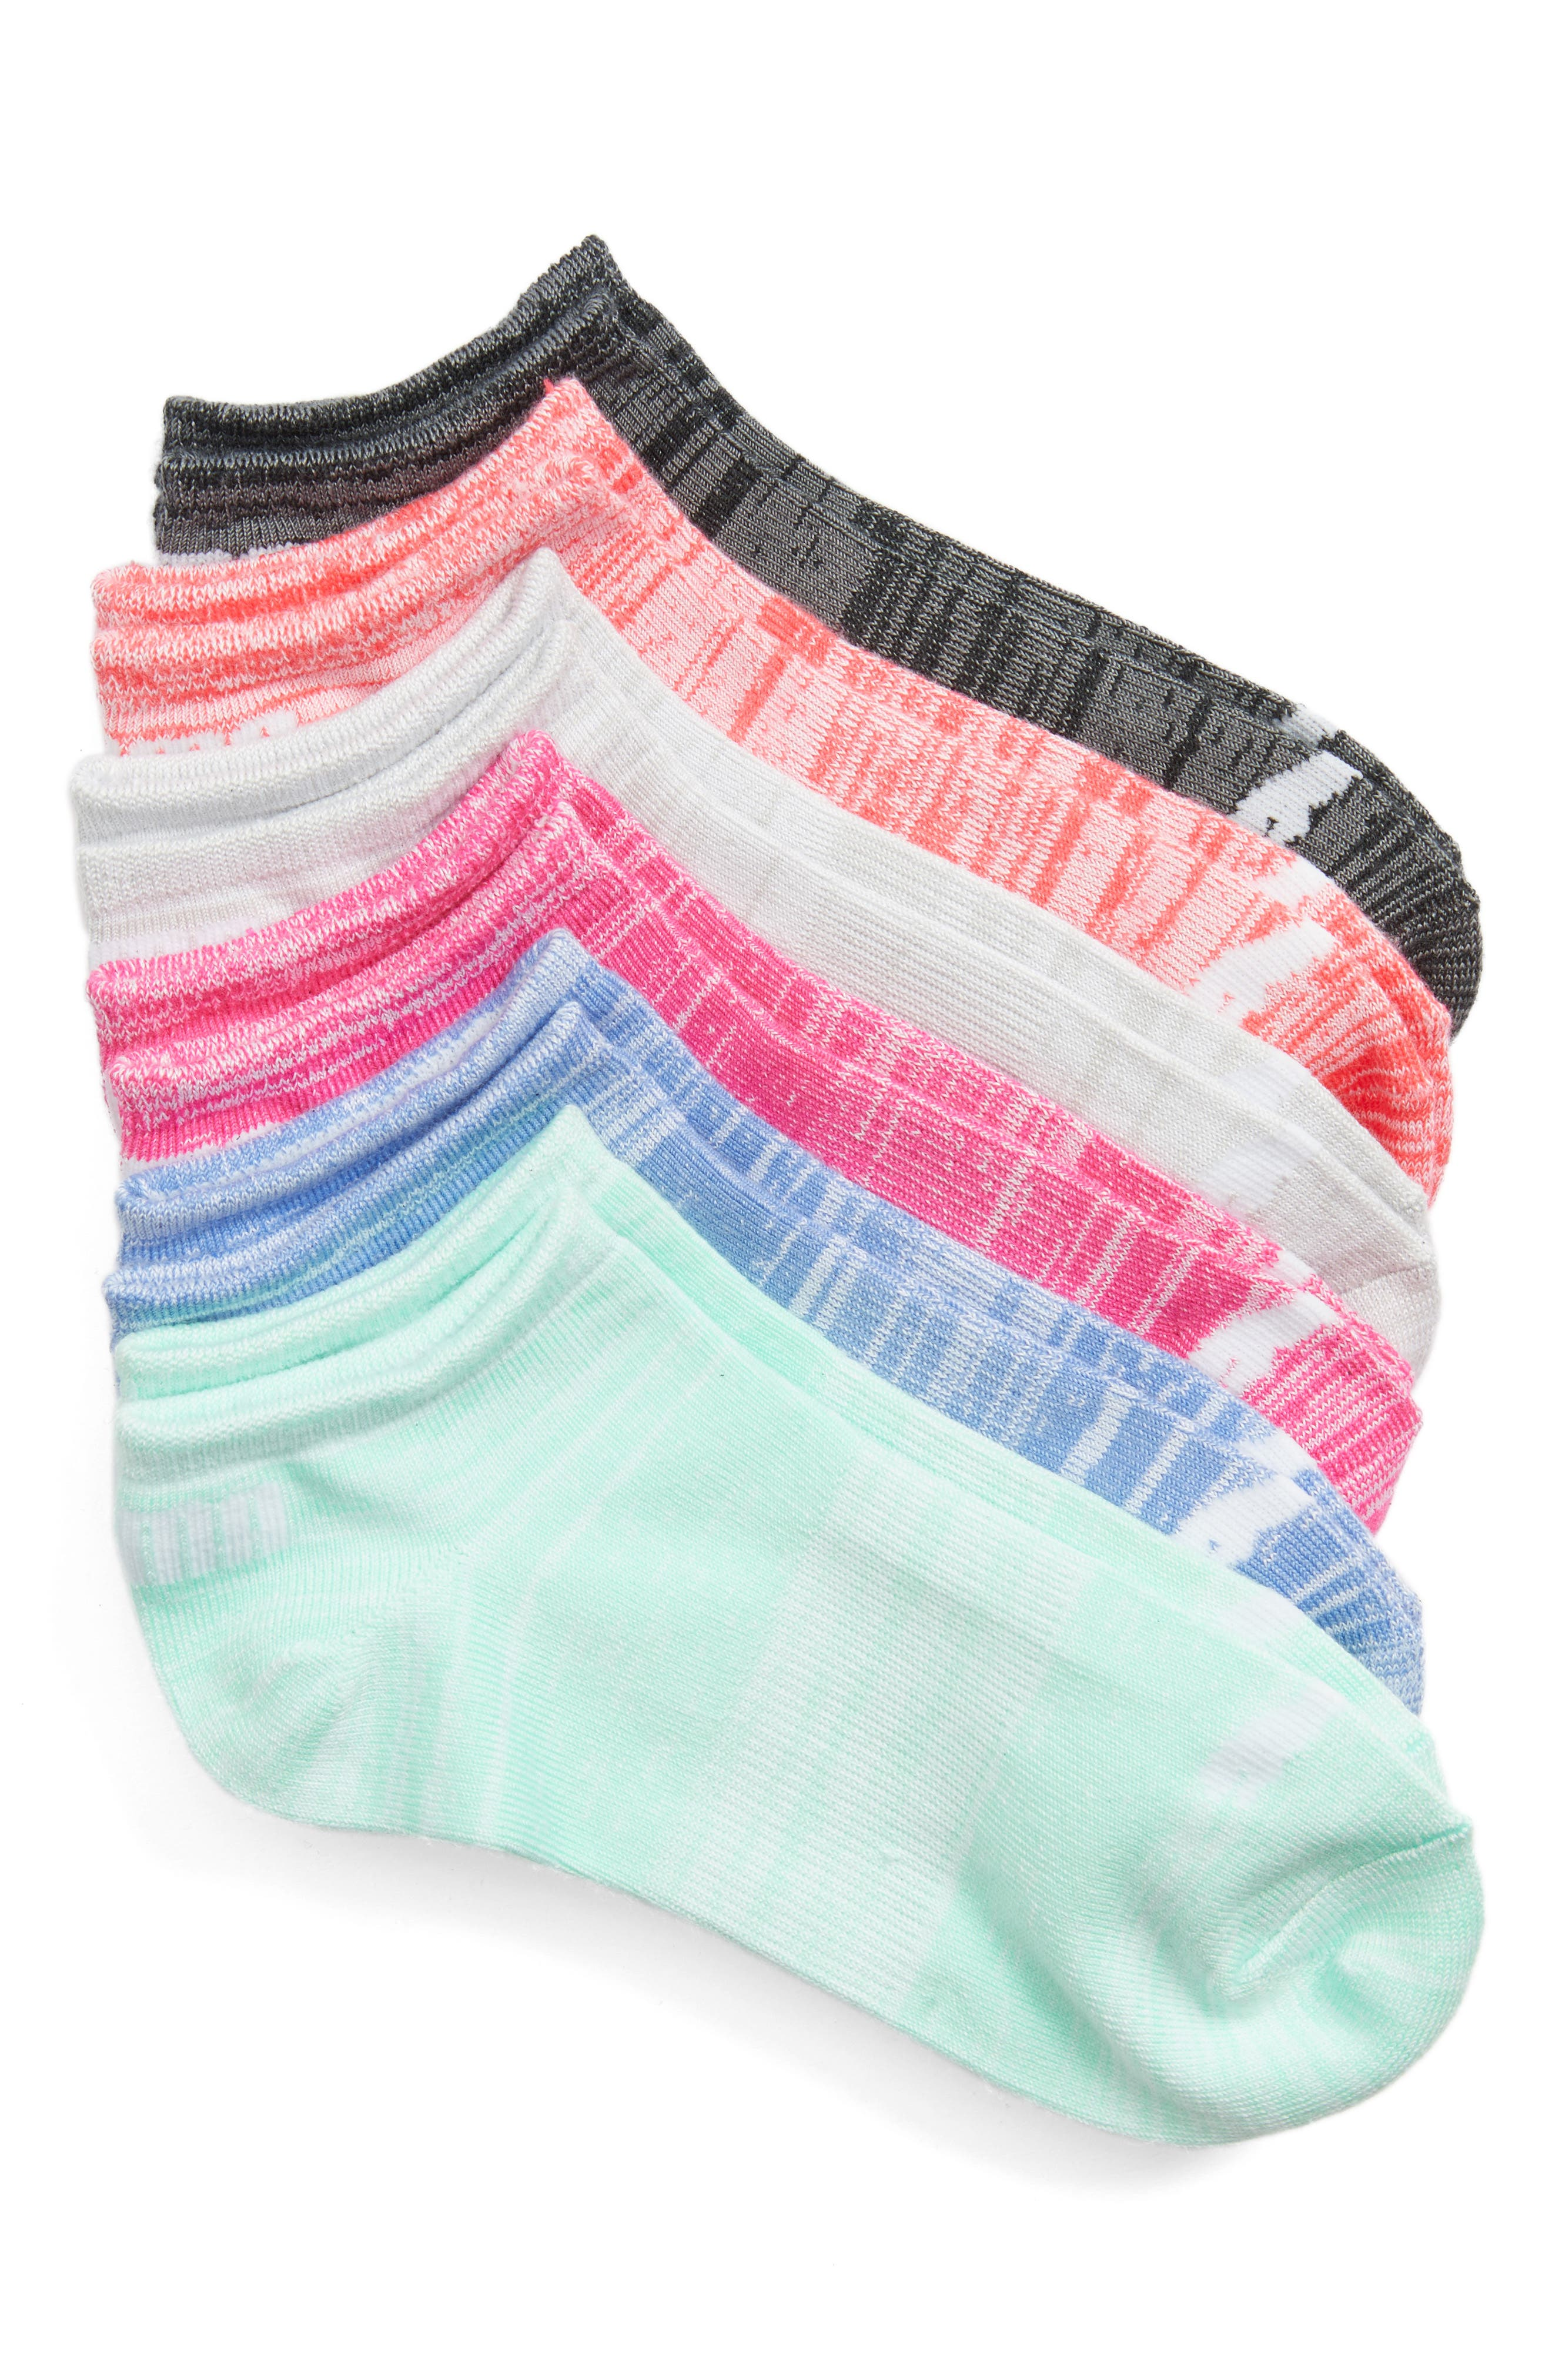 6-Pack No-Show Socks,                             Main thumbnail 1, color,                             Pink Multi